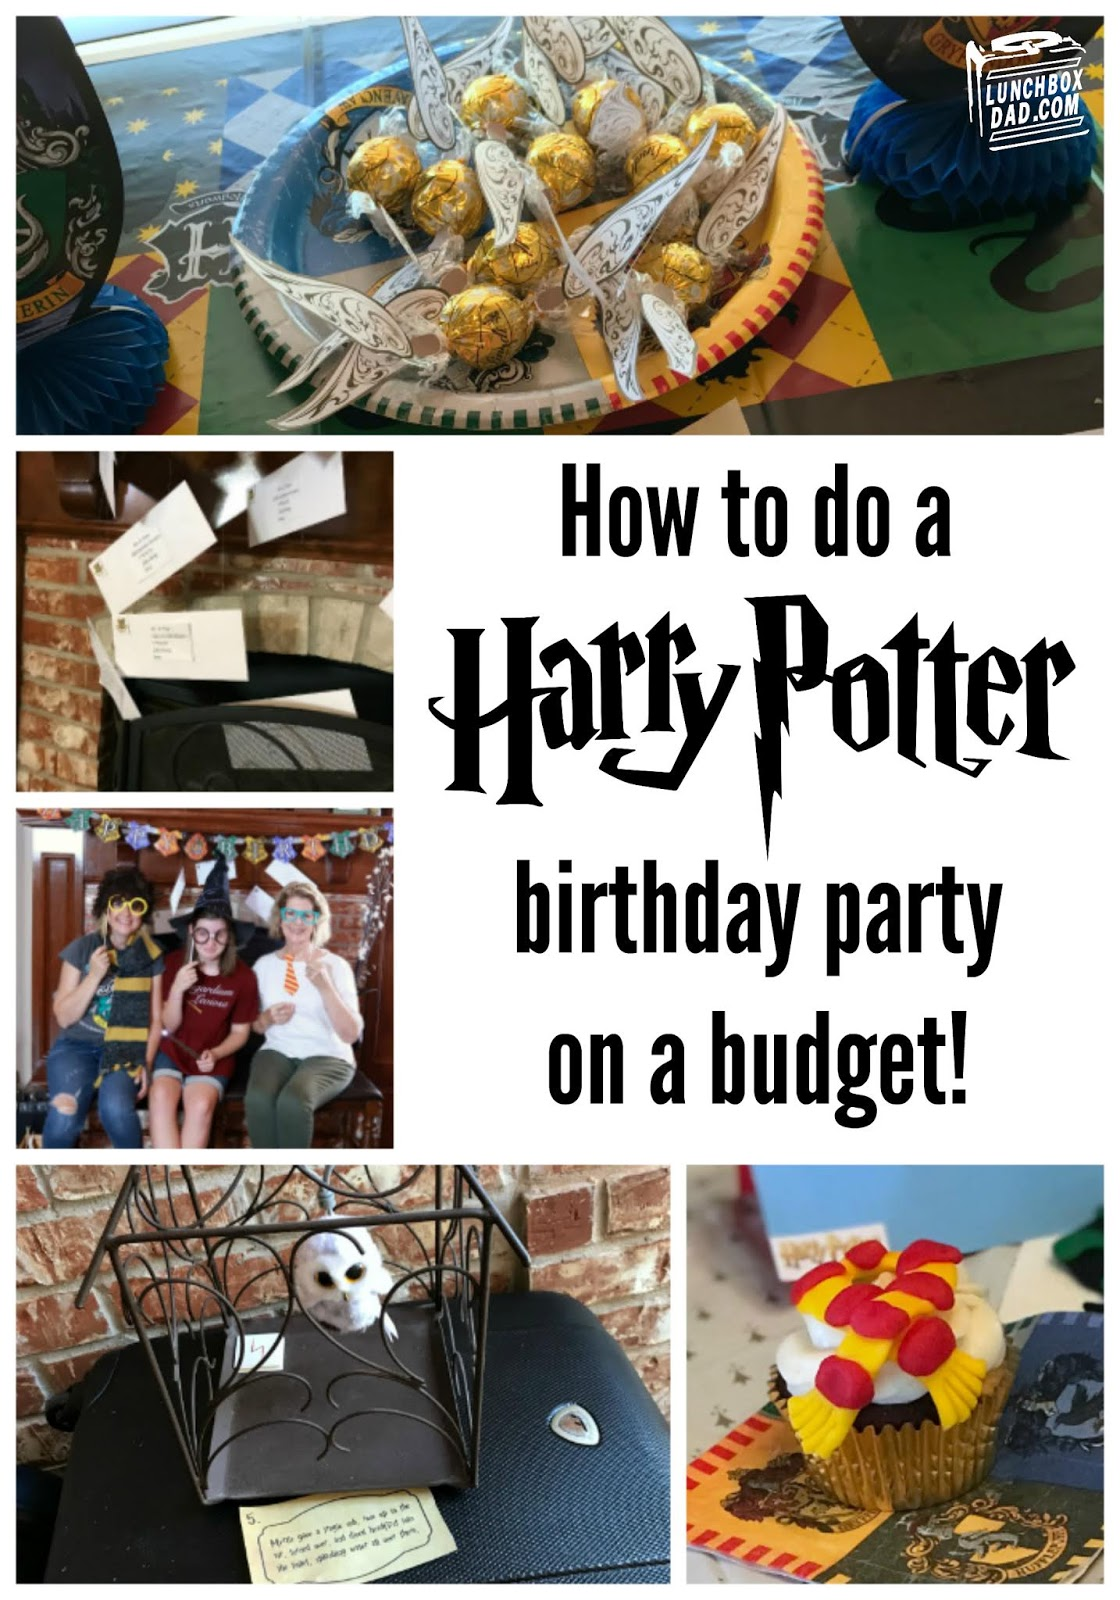 Lunchbox Dad Harry Potter Birthday Party Ideas On A Budget